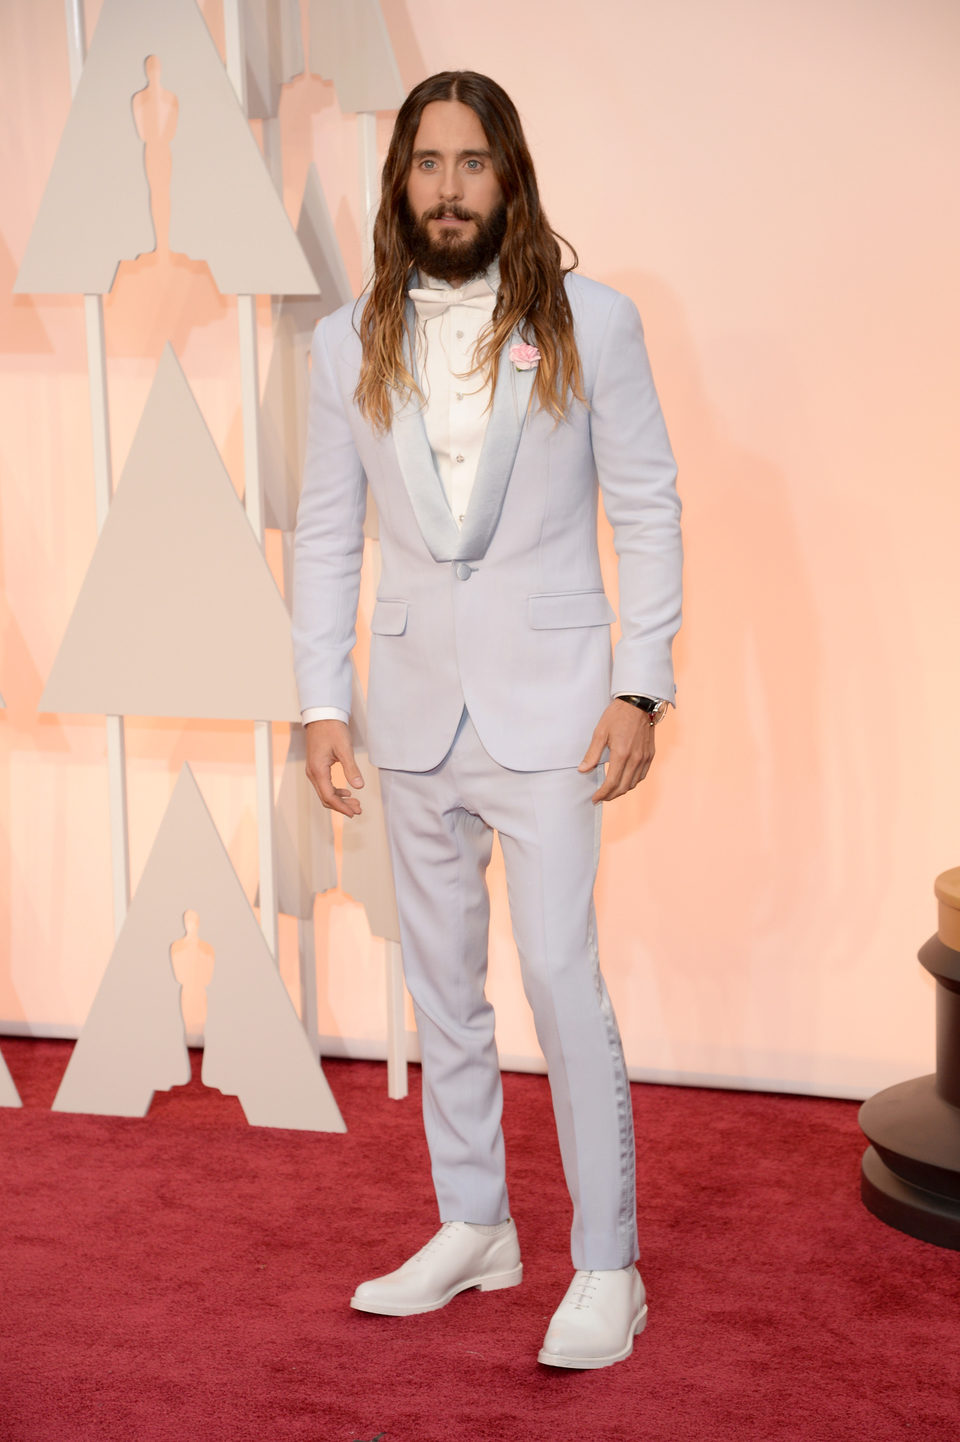 Jared Leto poses at the red carpet of the Oscar 2015